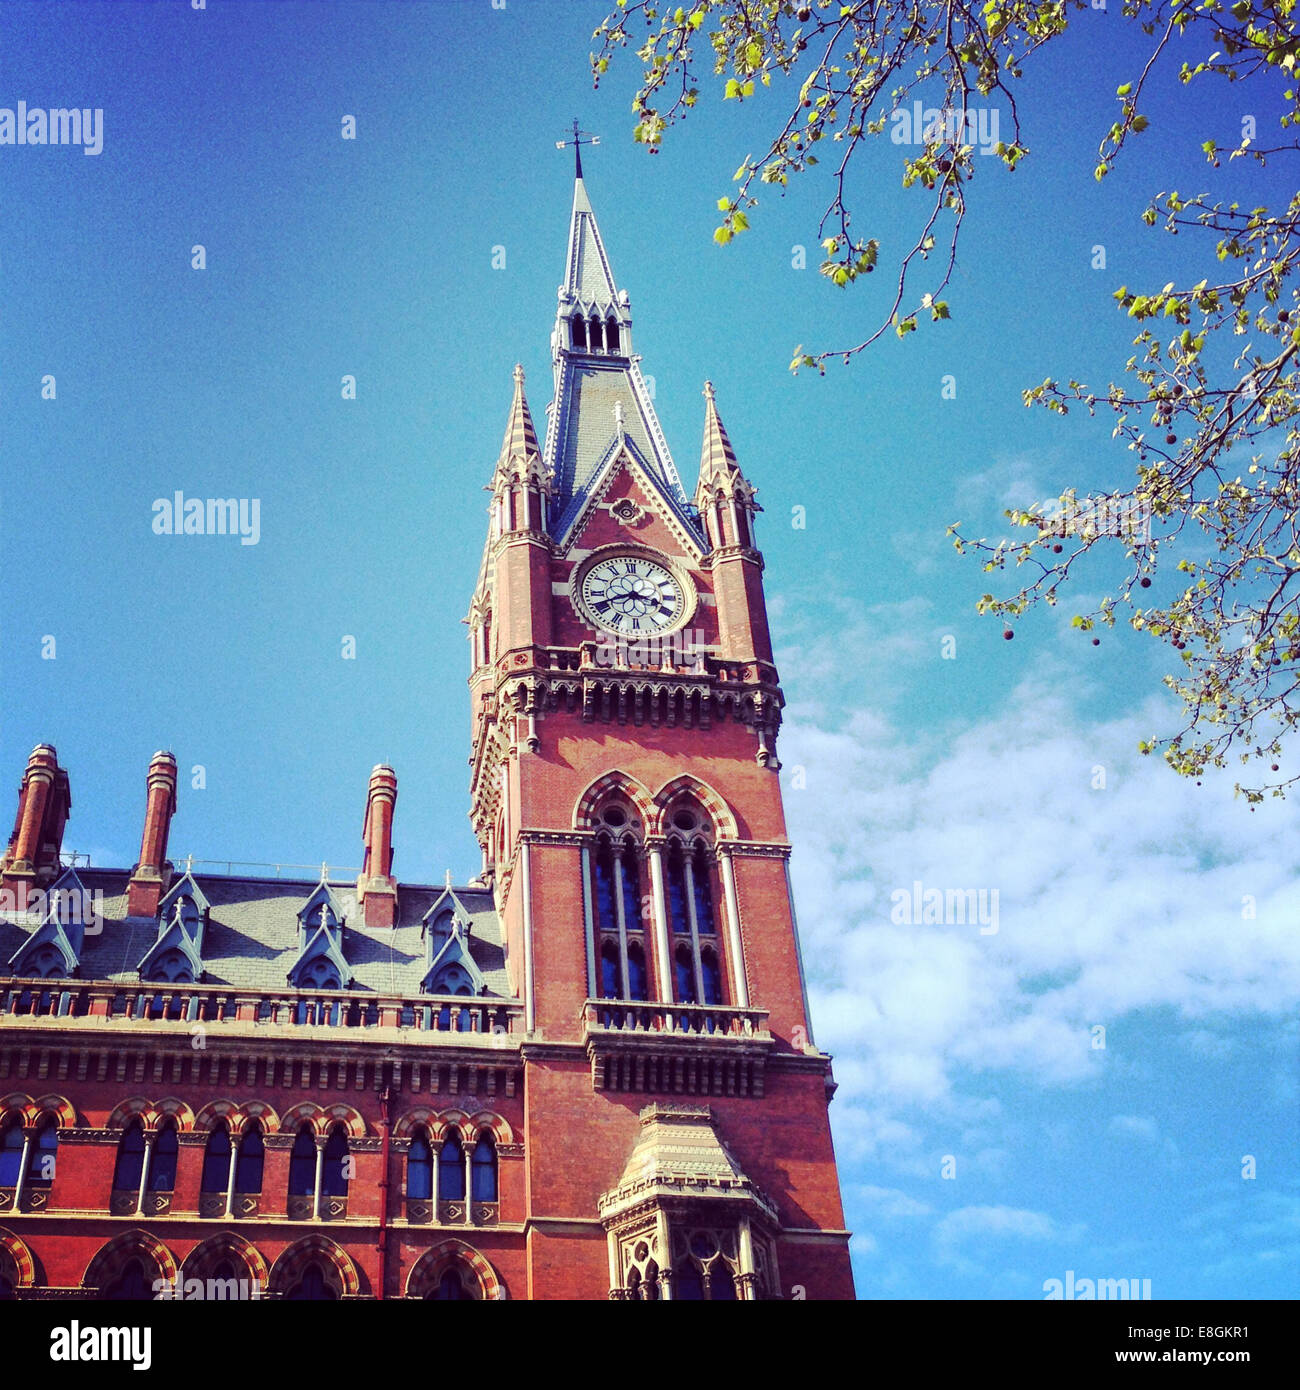 UK, London, Somers Town, King's Cross Square, St Pancras Clock Tower - Stock Image